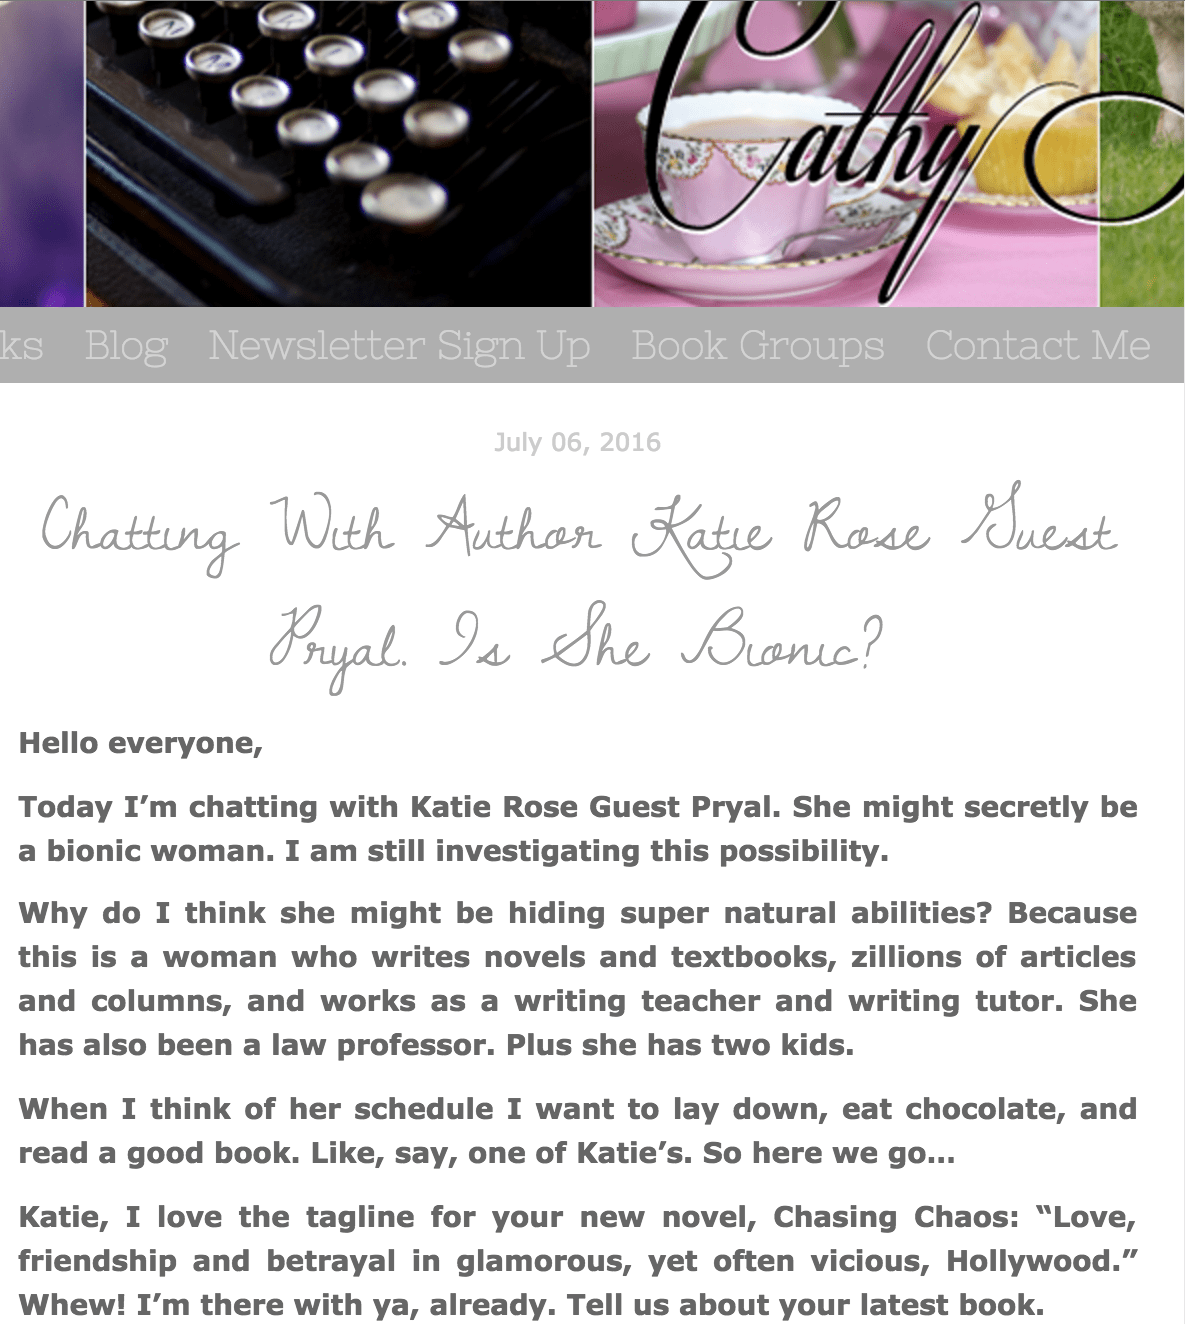 Cathy Lamb's Blog: Chatting with Author Katie Rose Guest Pryal. Is She Bionic?